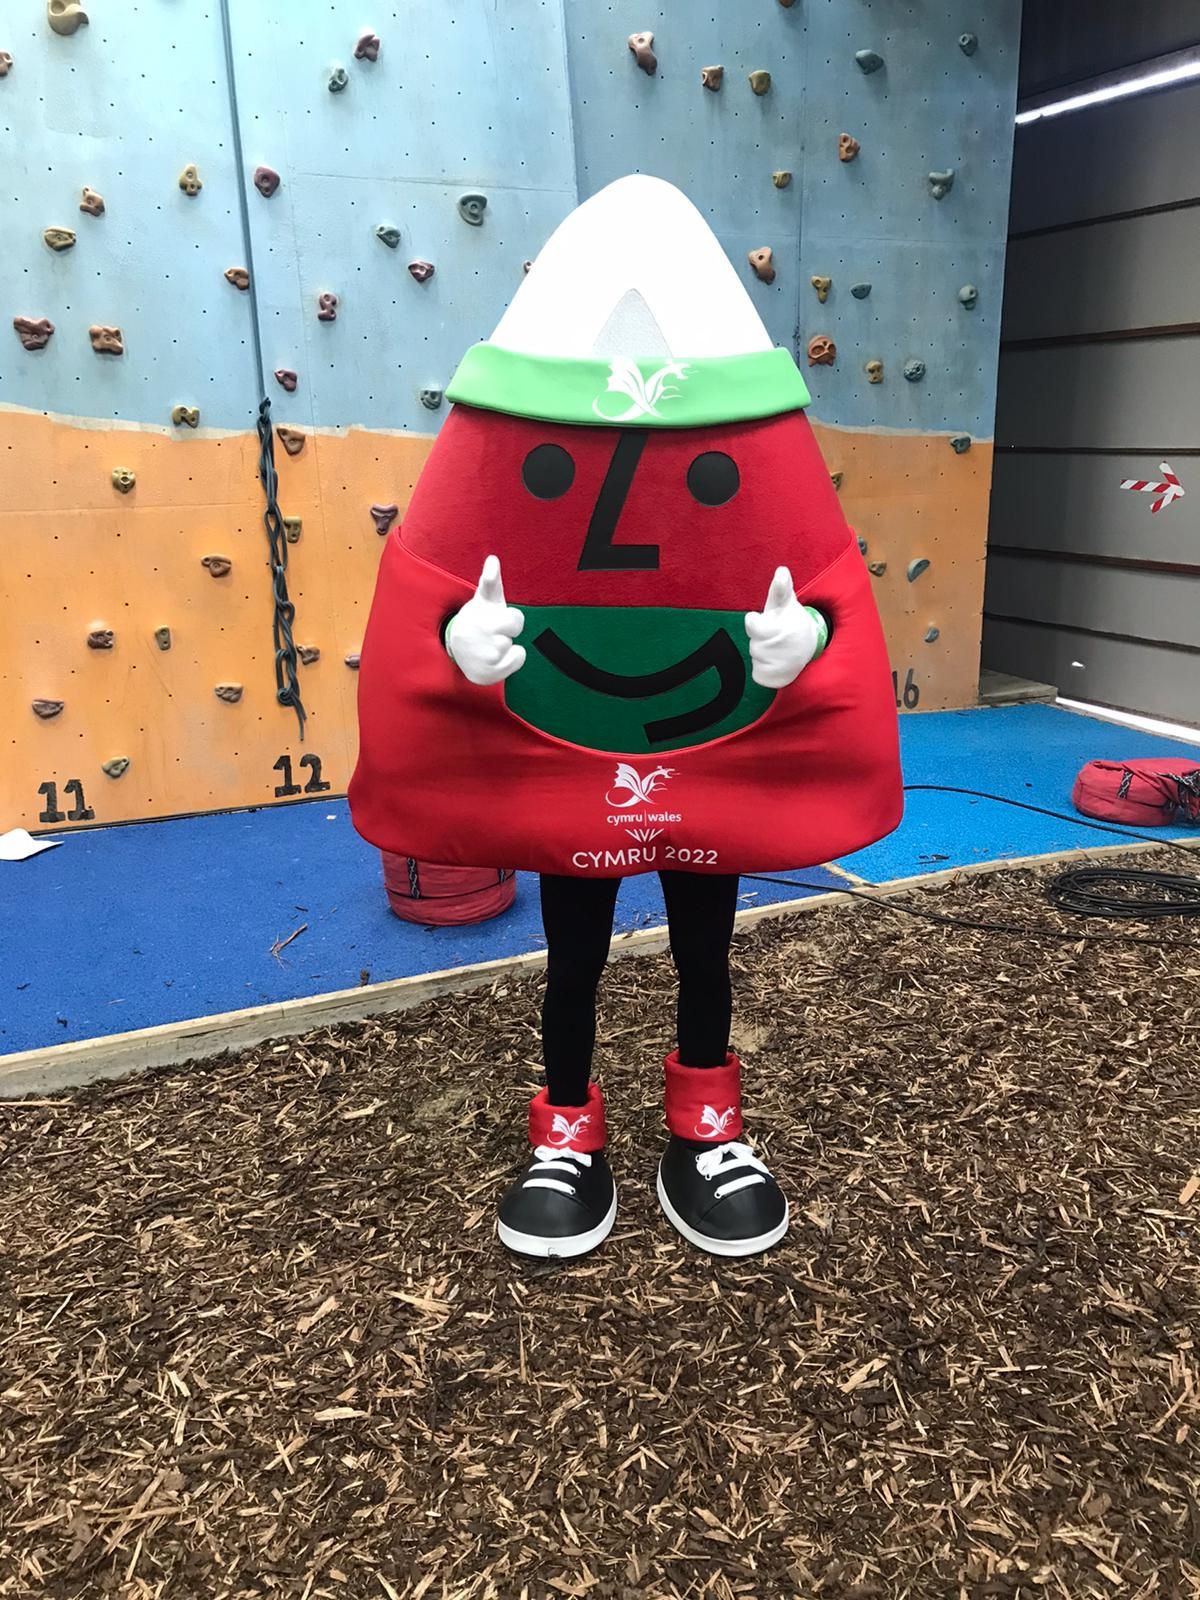 Mistar Urdd is set to make a number of public appearances in the build-up to Birmingham 2022 ©Twitter/TeamWales